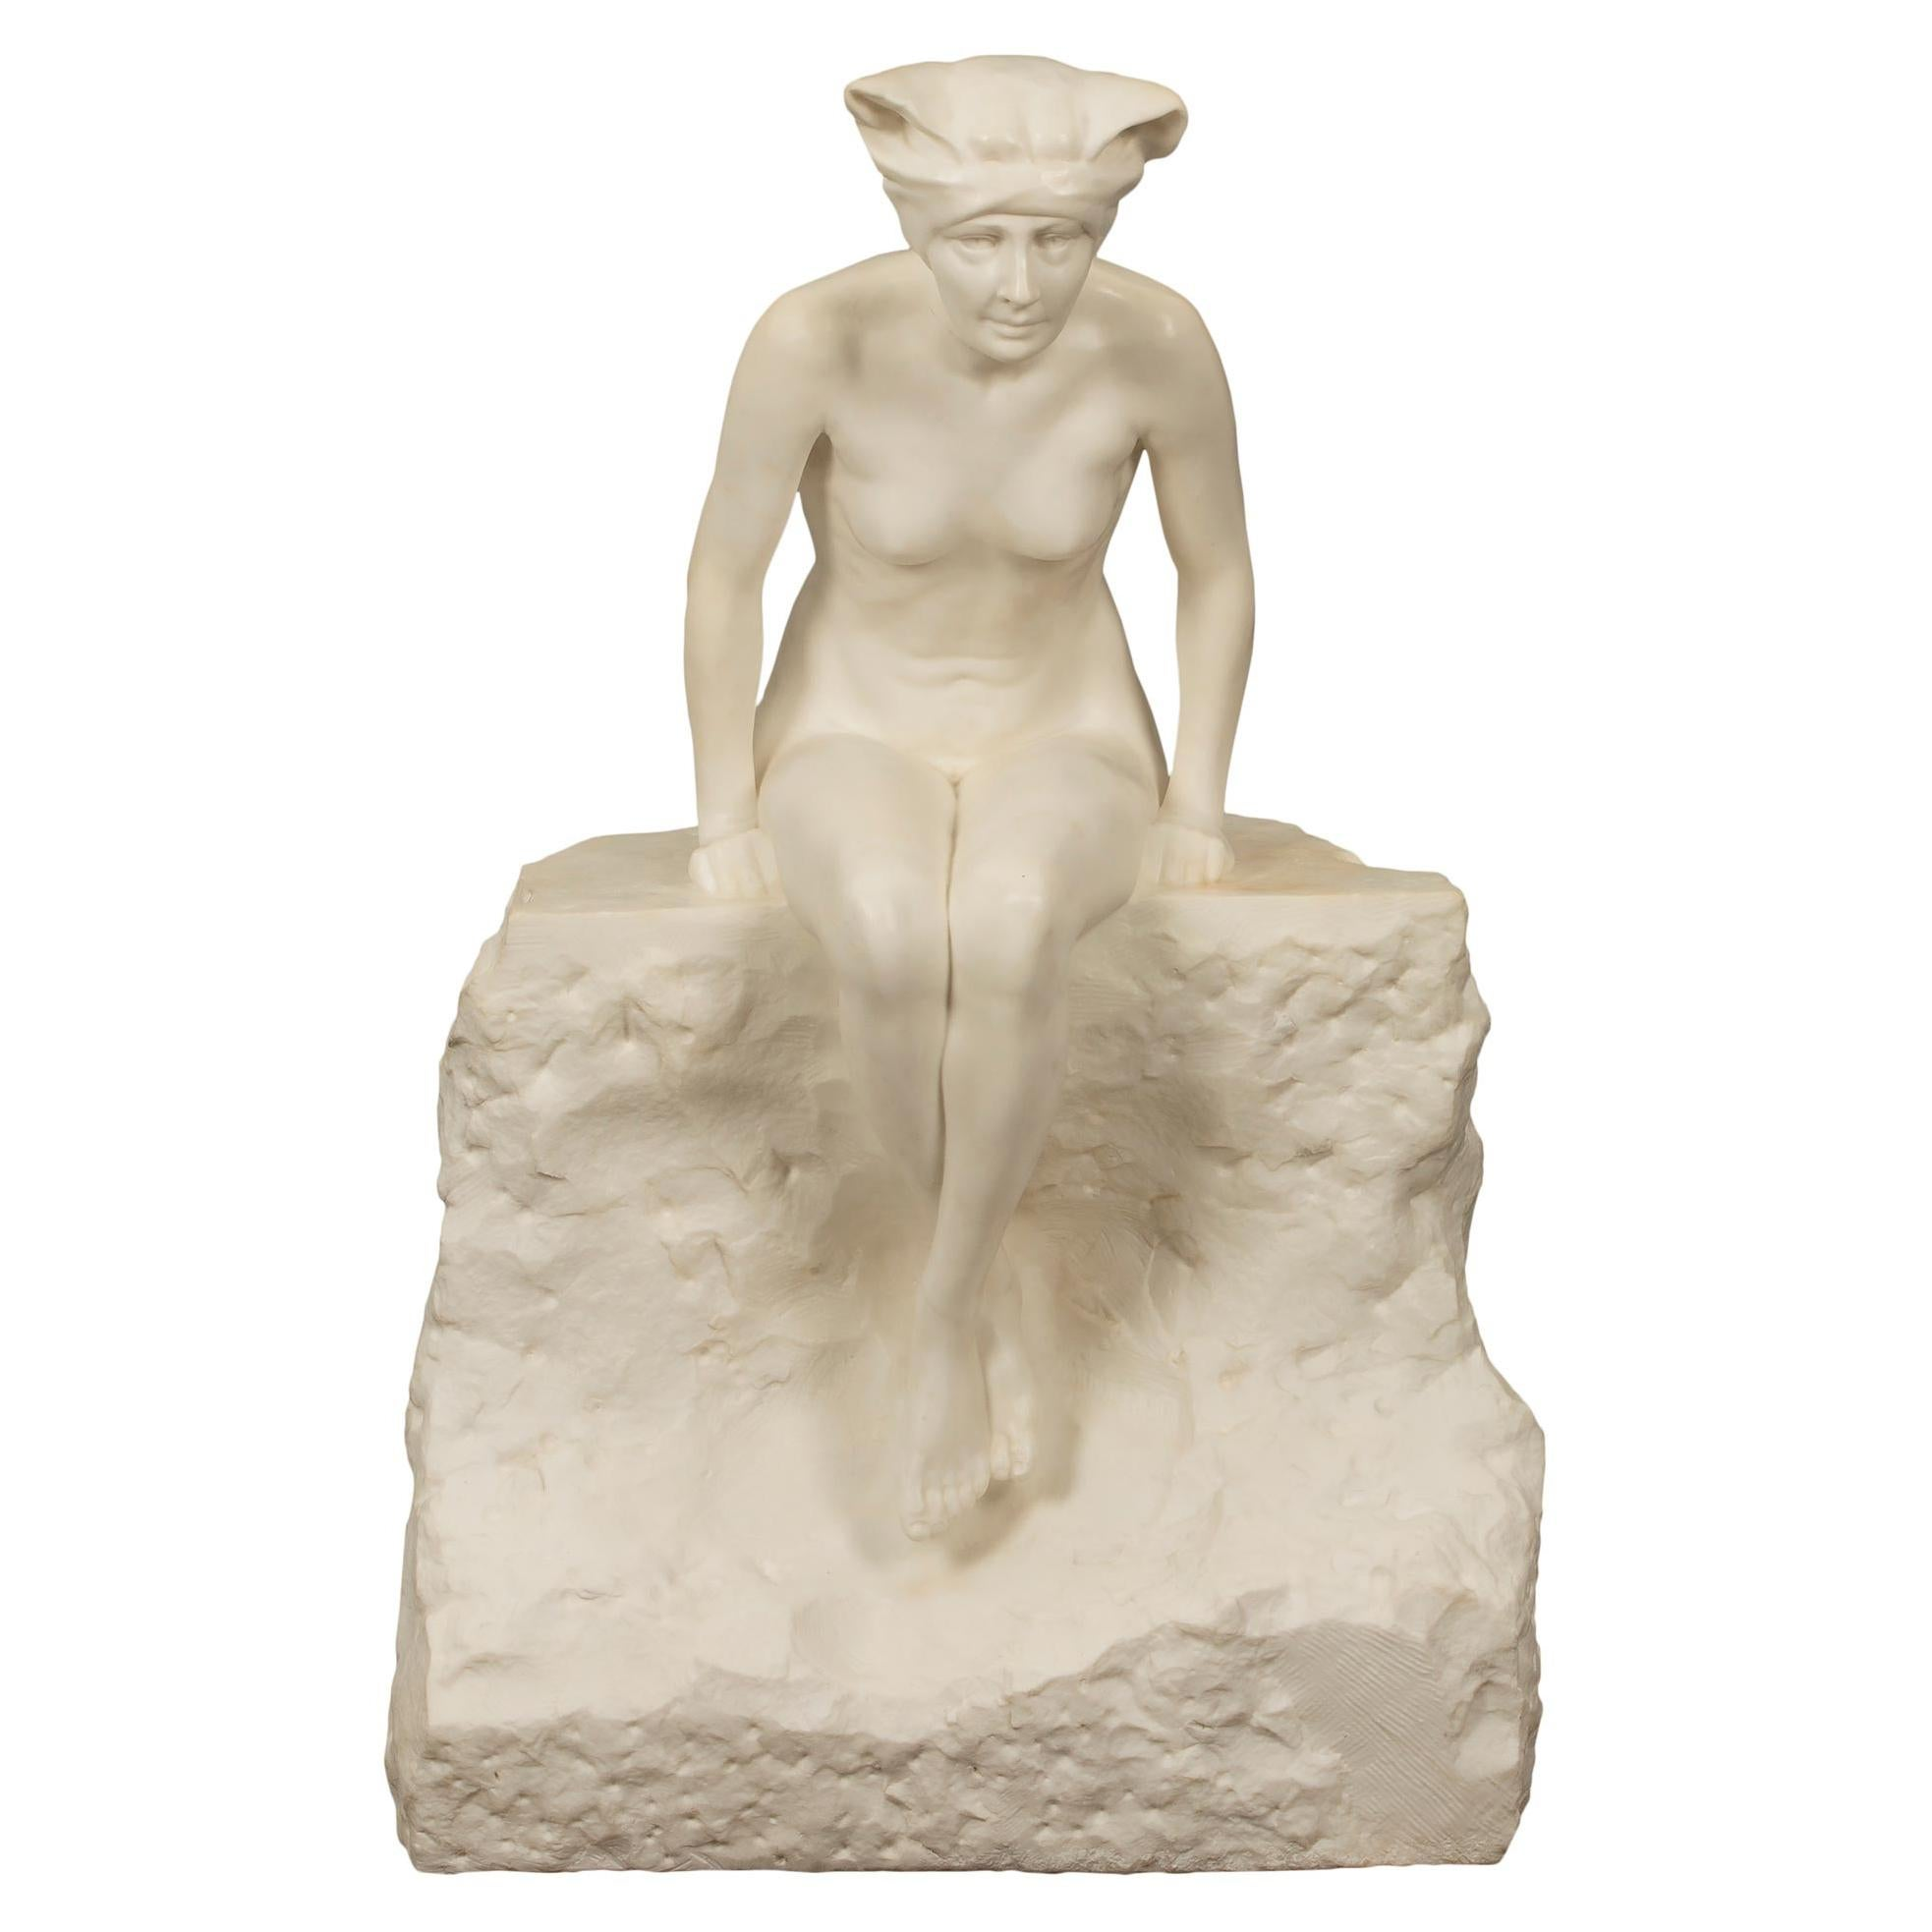 Italian 19th Century White Carrara Marble Statue of a Maiden Sitting on a Rock